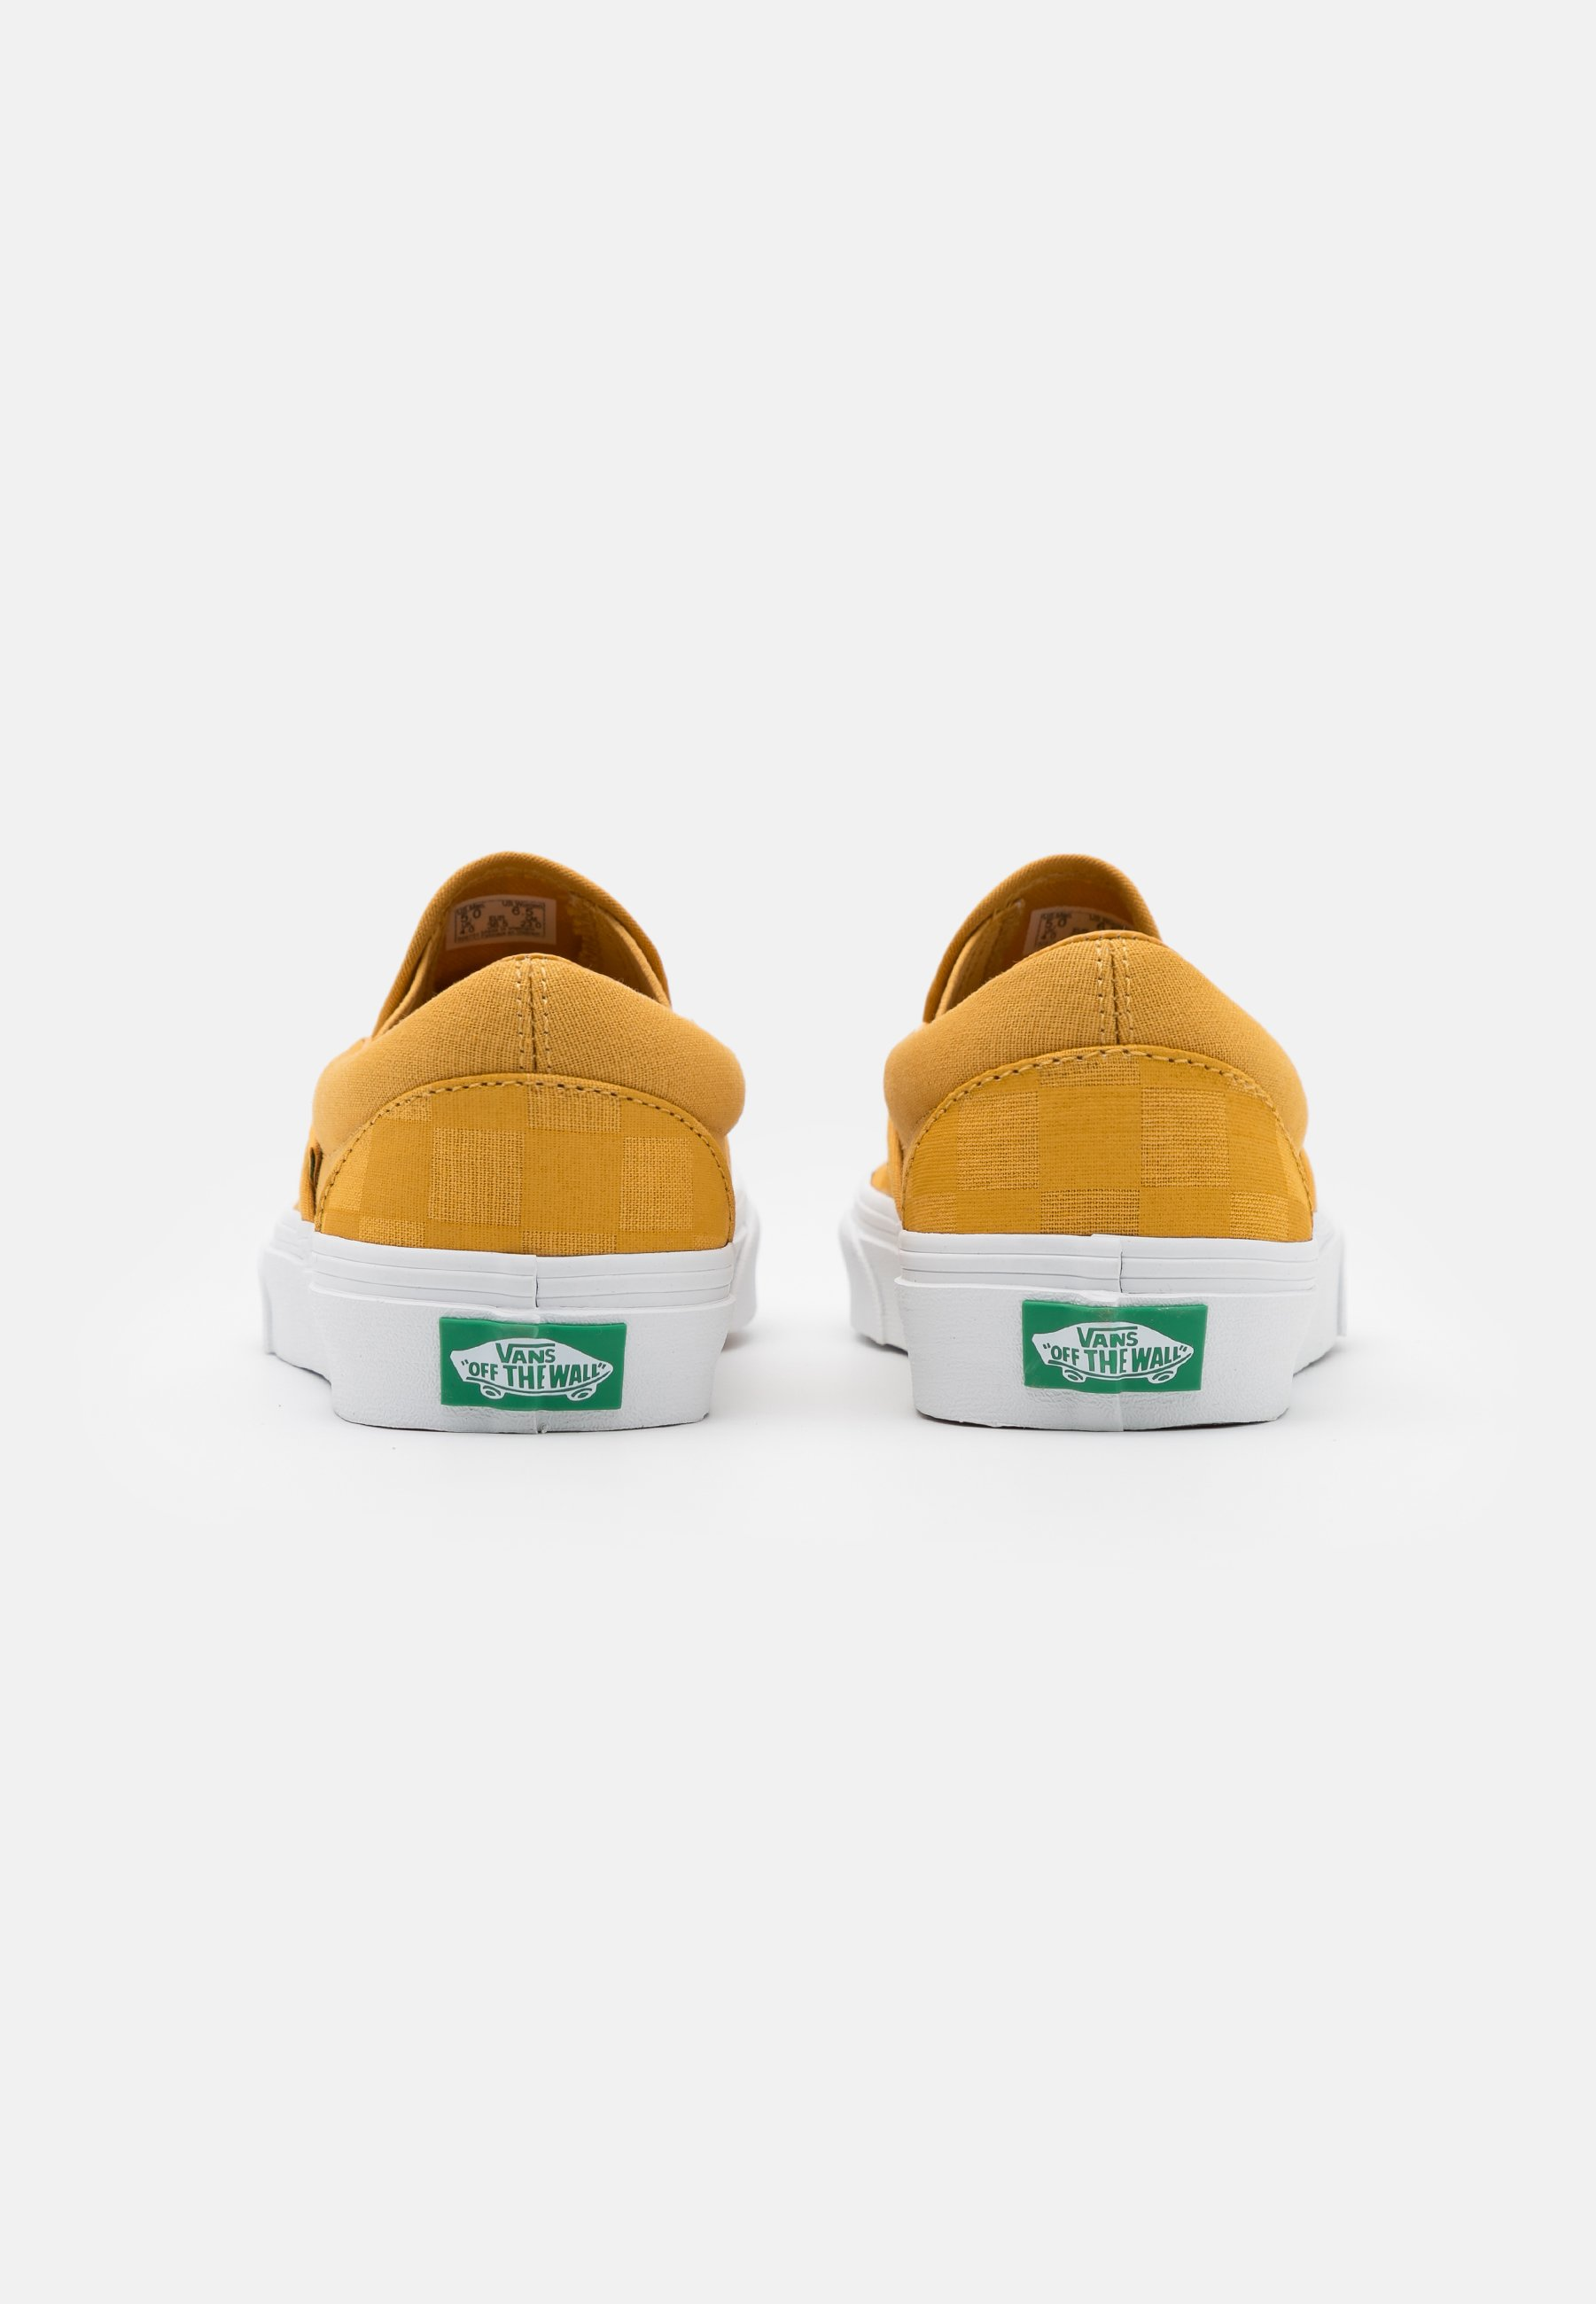 New Lower Prices Great Deals Women's Shoes Vans CLASSIC  Slip-ons honey gold/deep mint UbF4pMX31 bLnSYKSUx